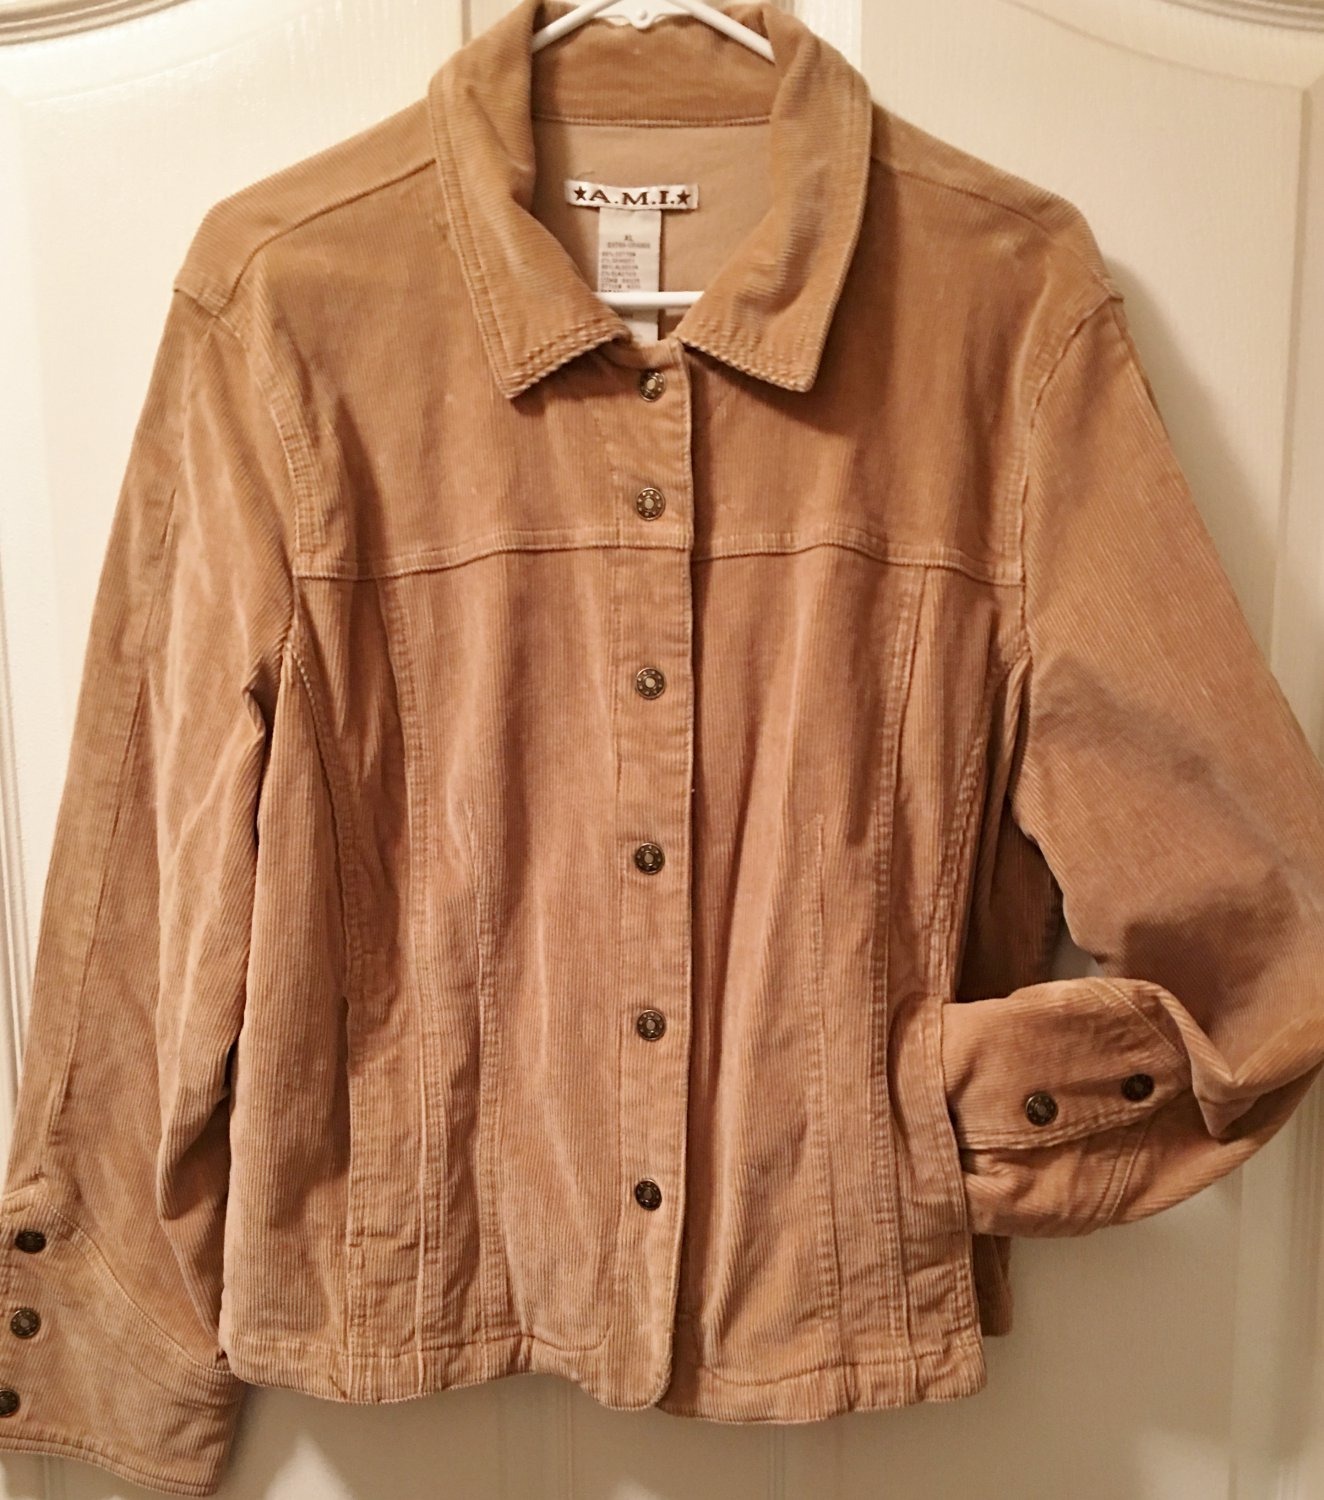 NEW Ladies CORDURORY JACKET A.M.I. Coat XL (16) CAMEL TAN Cotton Blend